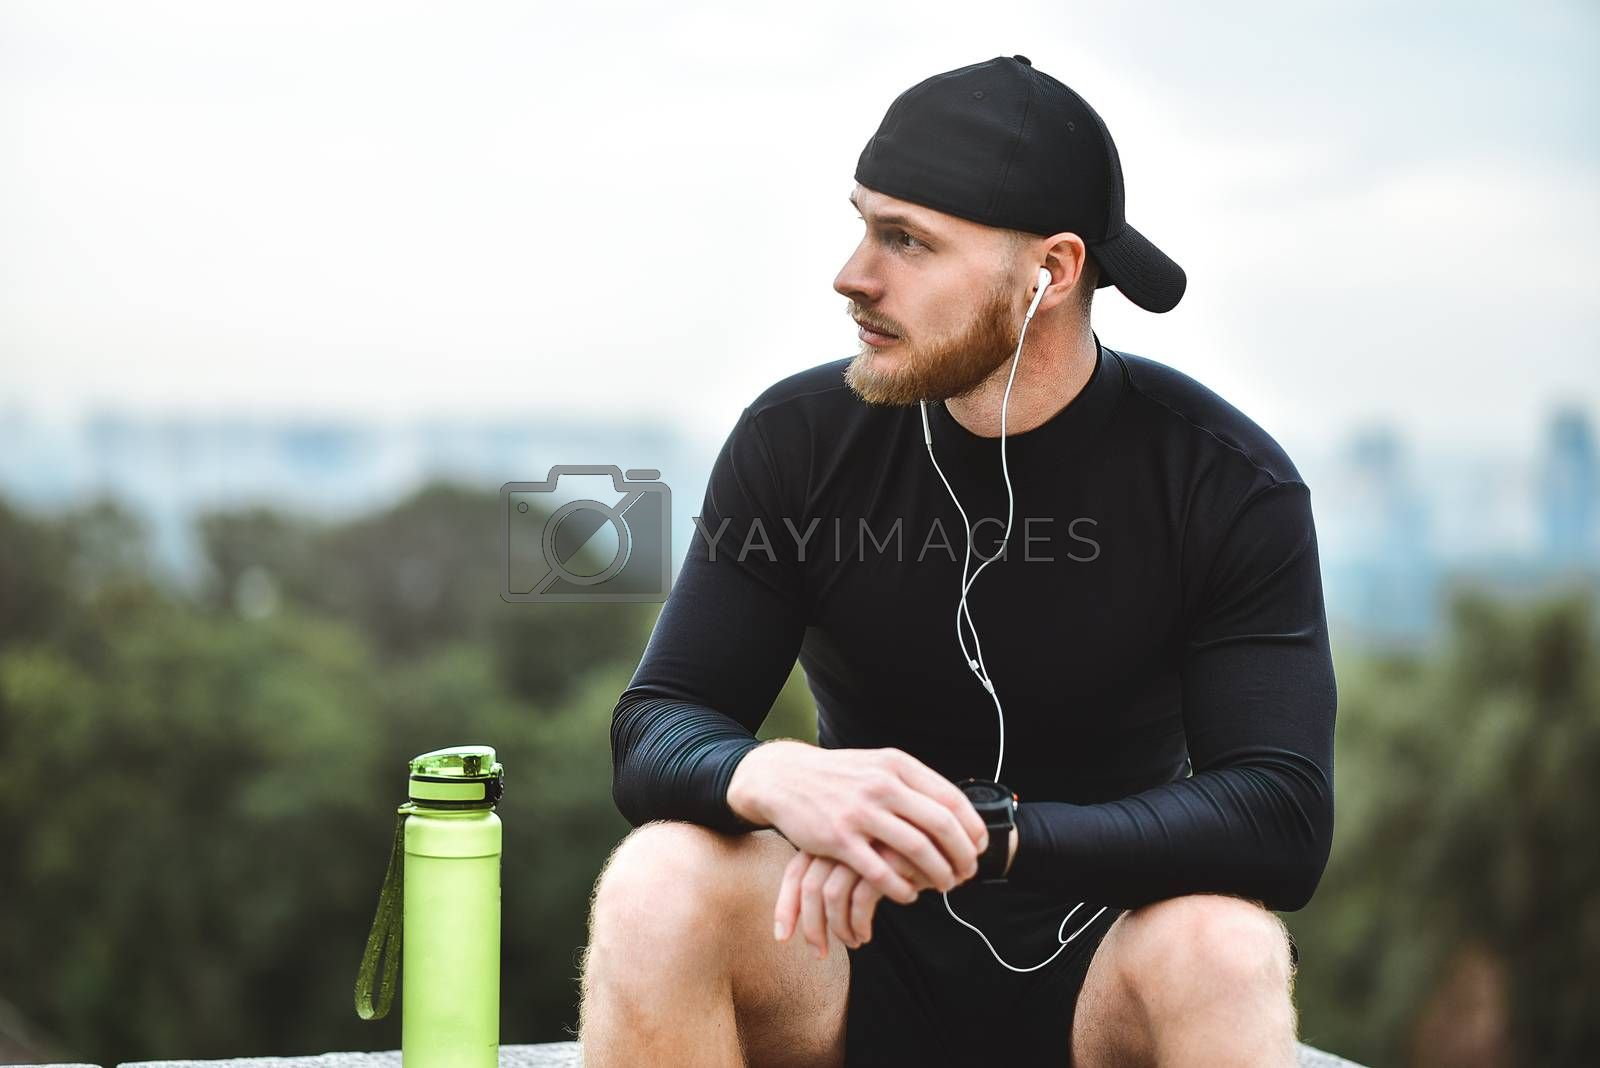 Muscular bearded athlete checking burned calories on smart watch after good workout session on city